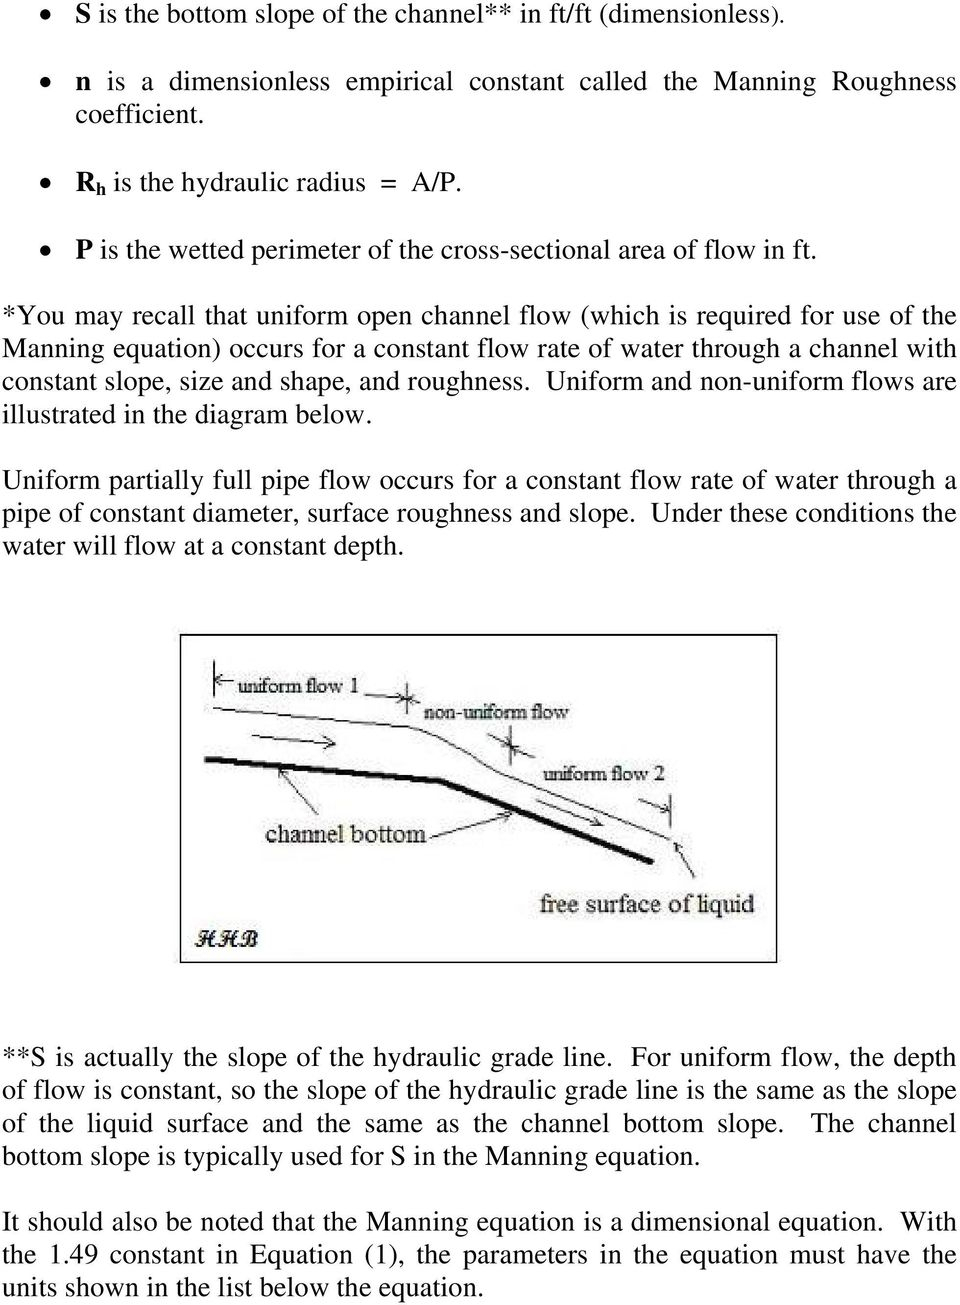 manual computation of partially full pipe